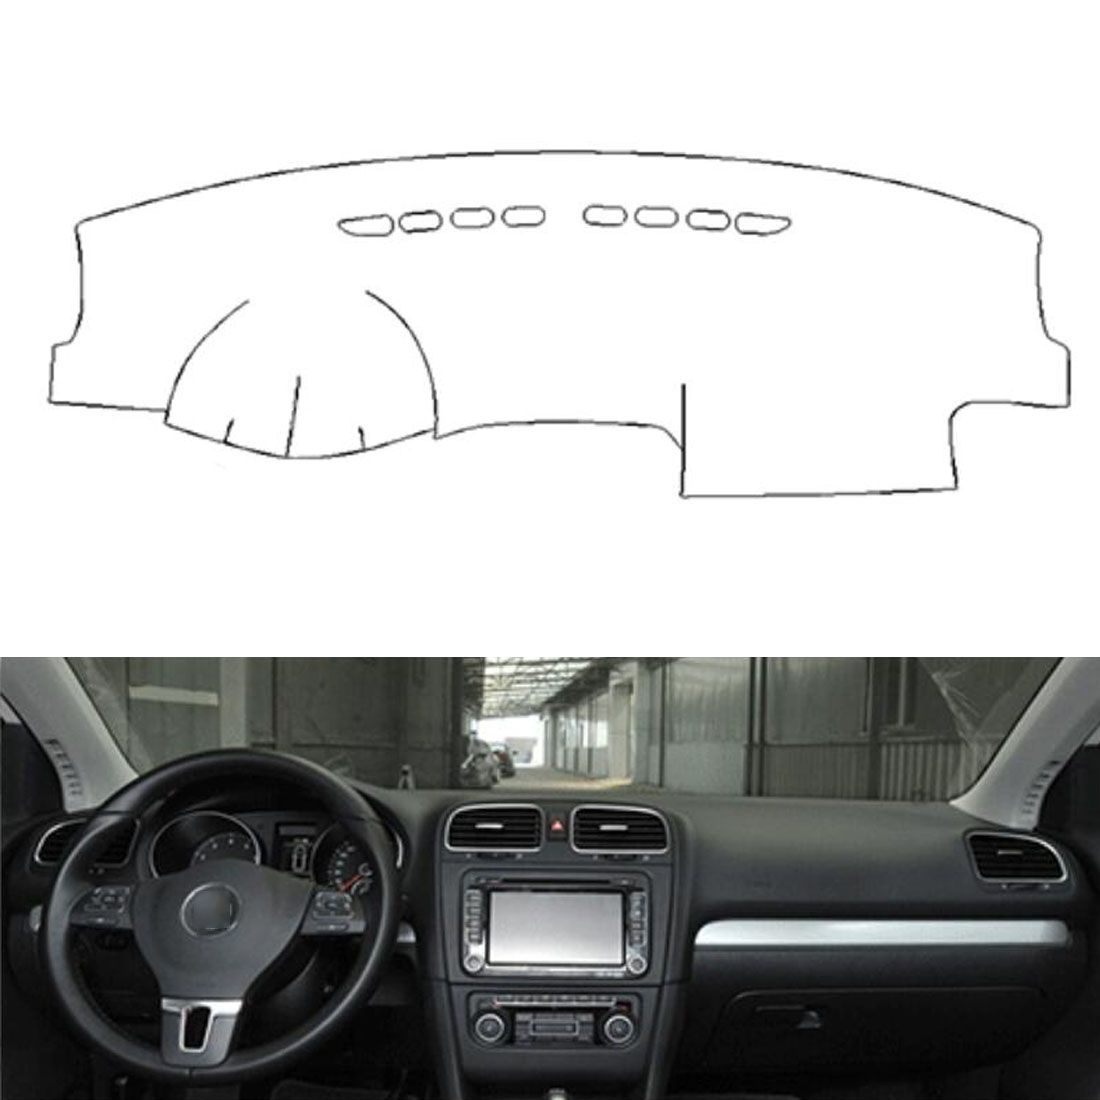 Dongzhen Fit For VW Golf 6 GIT 2010-2013 Auto Car Dashboard Cover Avoid Light Pad Instrument Platform Dash Board Cover Mat